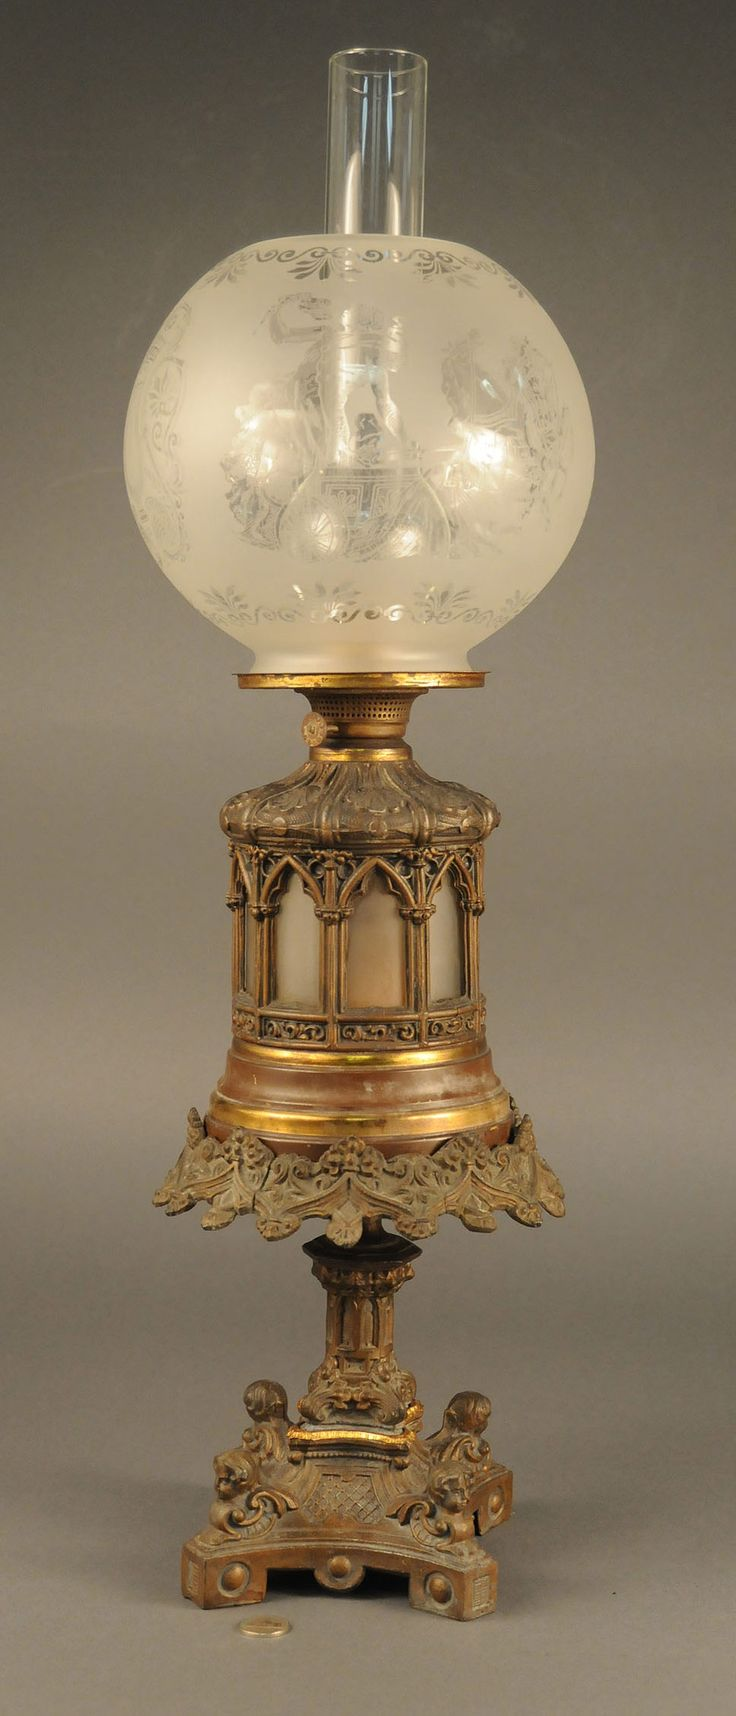 Glass Oil Lamp Shades : Best images about antique vintage lamps on pinterest